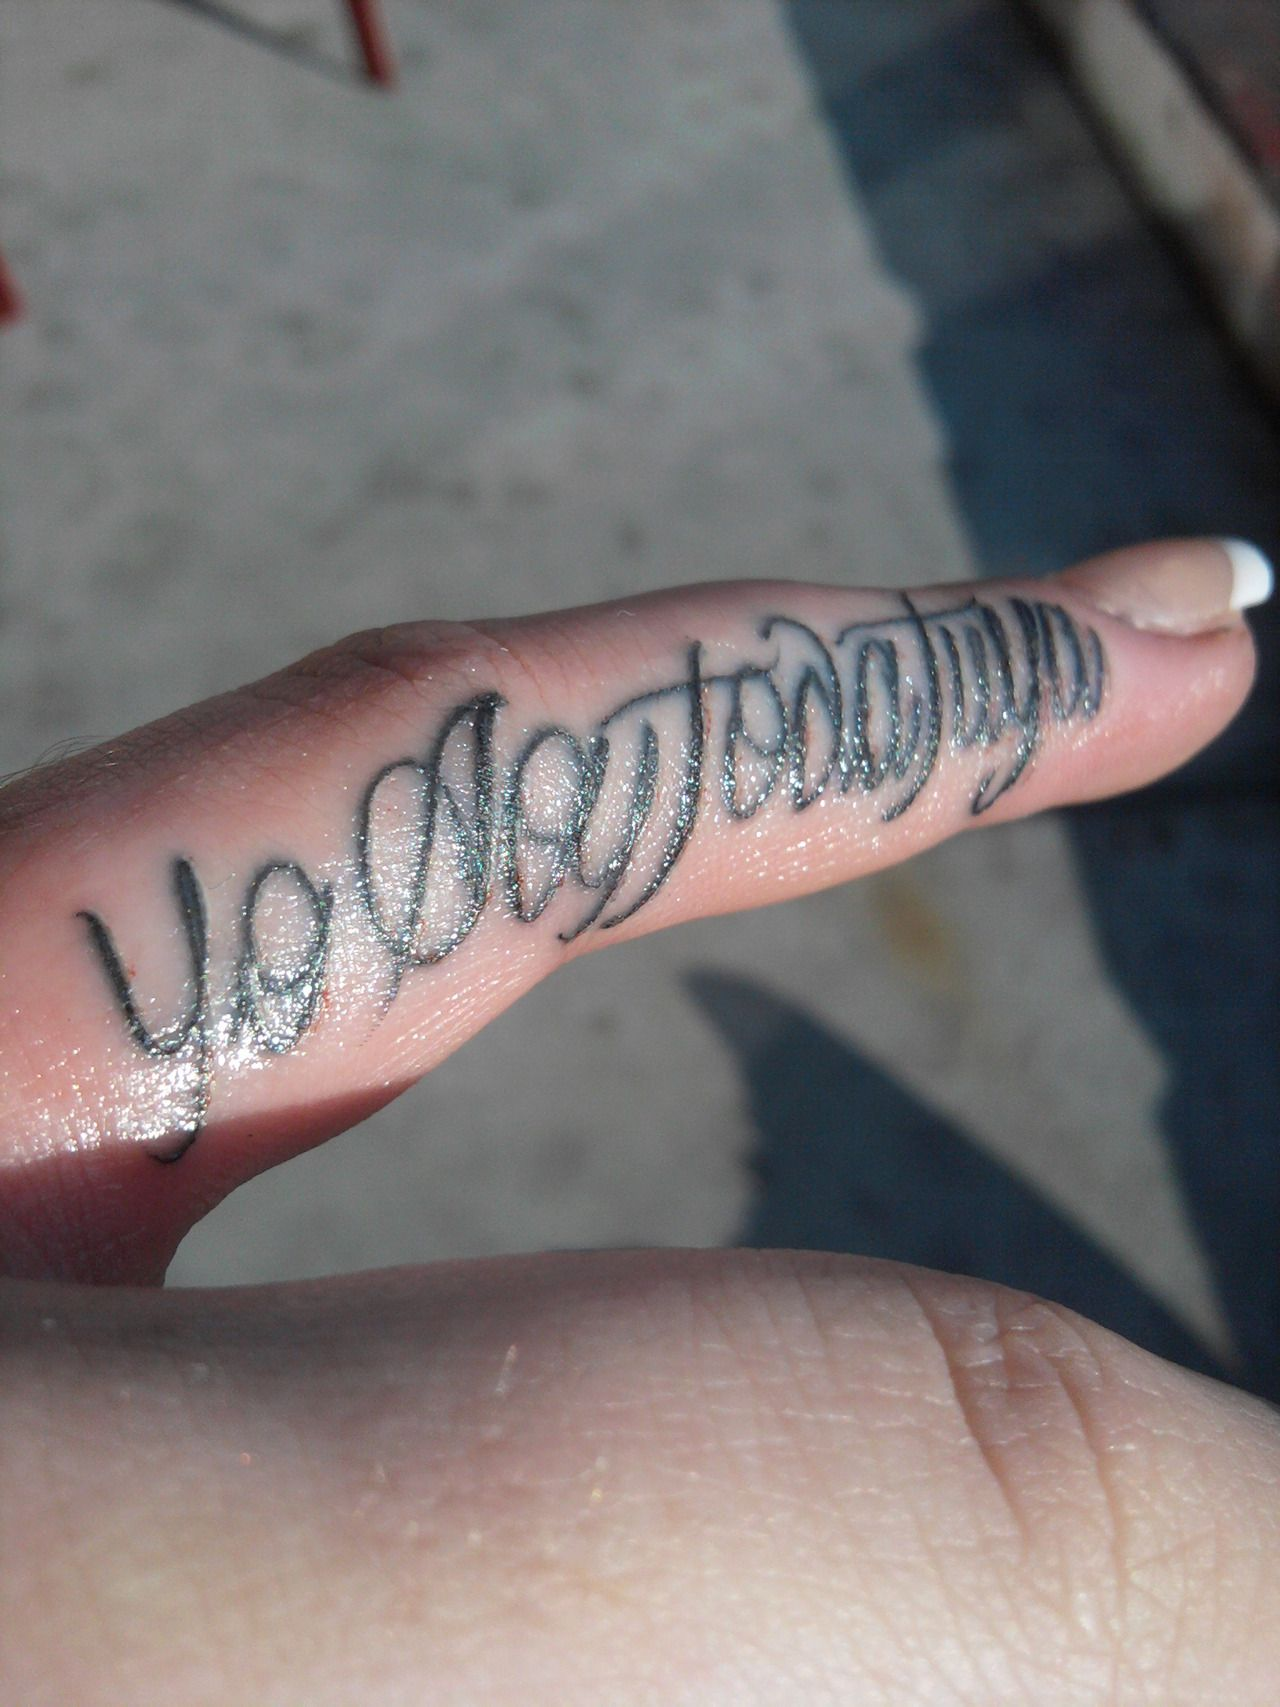 42+ Astonishing Now or never tattoo shop ideas in 2021